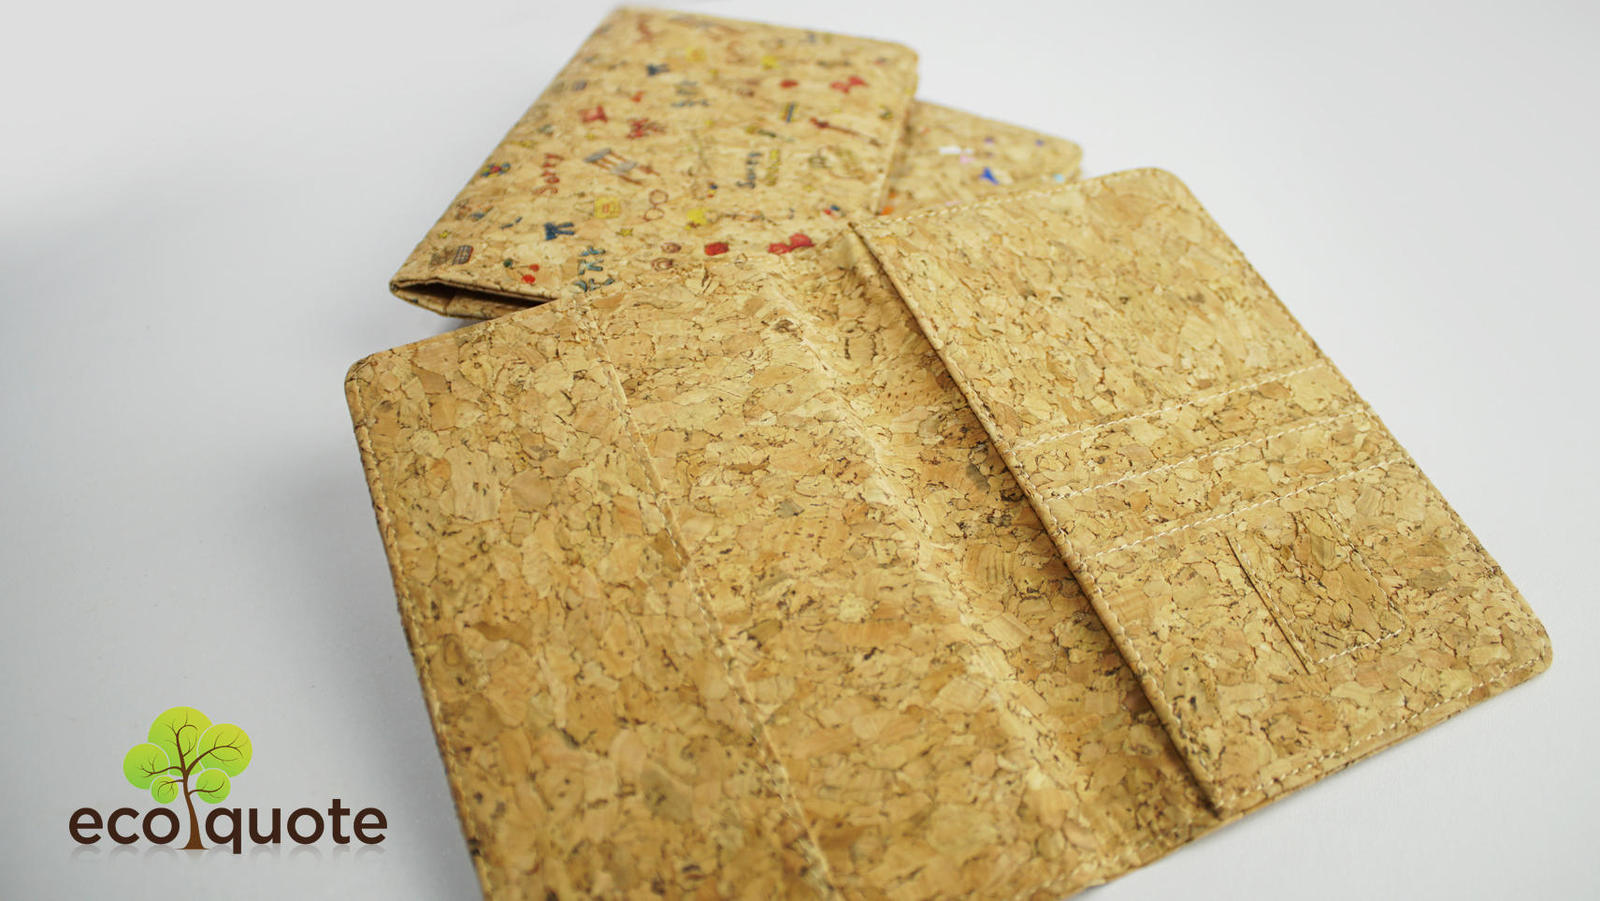 EcoQuote EcoQuote Passport Cover Simple Handmade Cork Material Great for Vegan